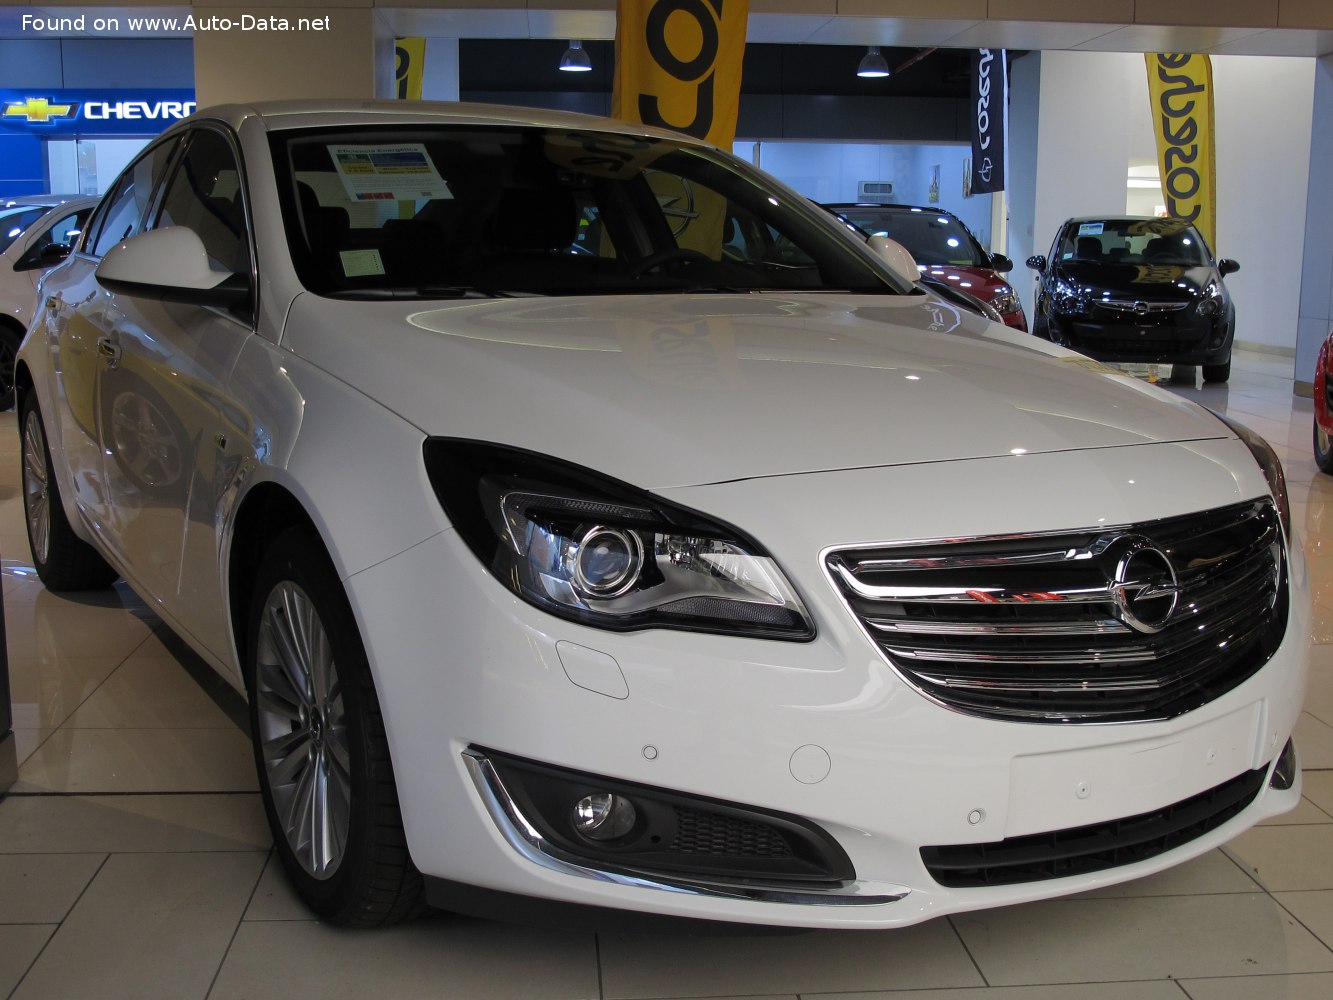 2015 Opel Insignia Hatchback A Facelift 2013 1 6 Cdti 136 Hp Technical Specs Data Fuel Consumption Dimensions